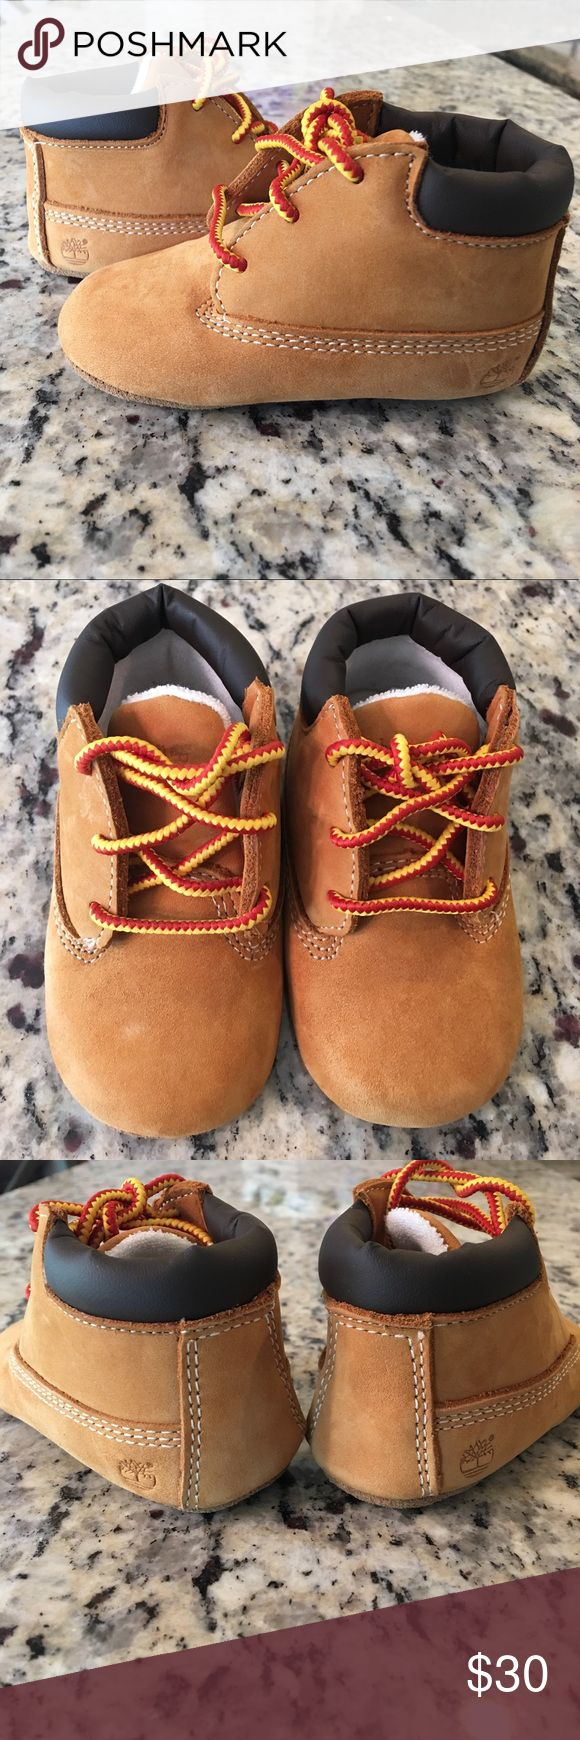 Infant Timberland boots Never worn infant Timberland Crib Boots size 3. Timberland Shoes Baby & Walker